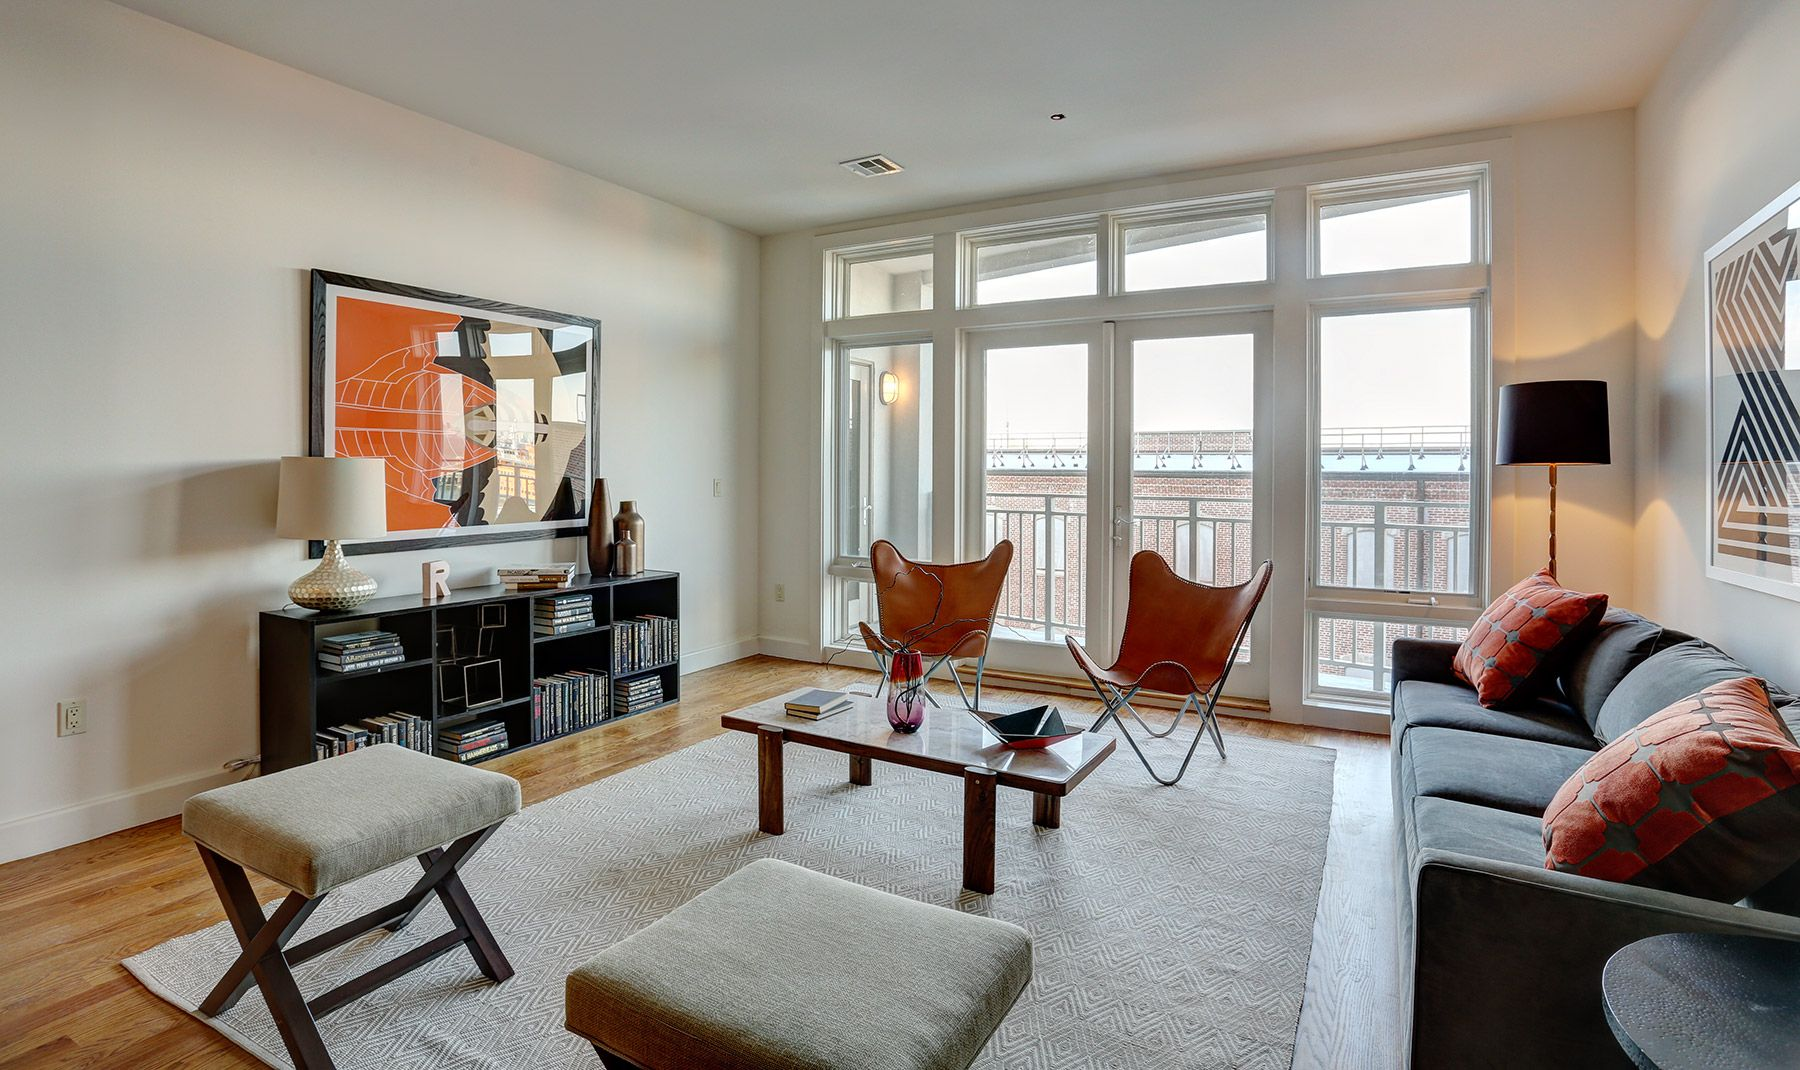 New staten island homes for sale at the accolade living